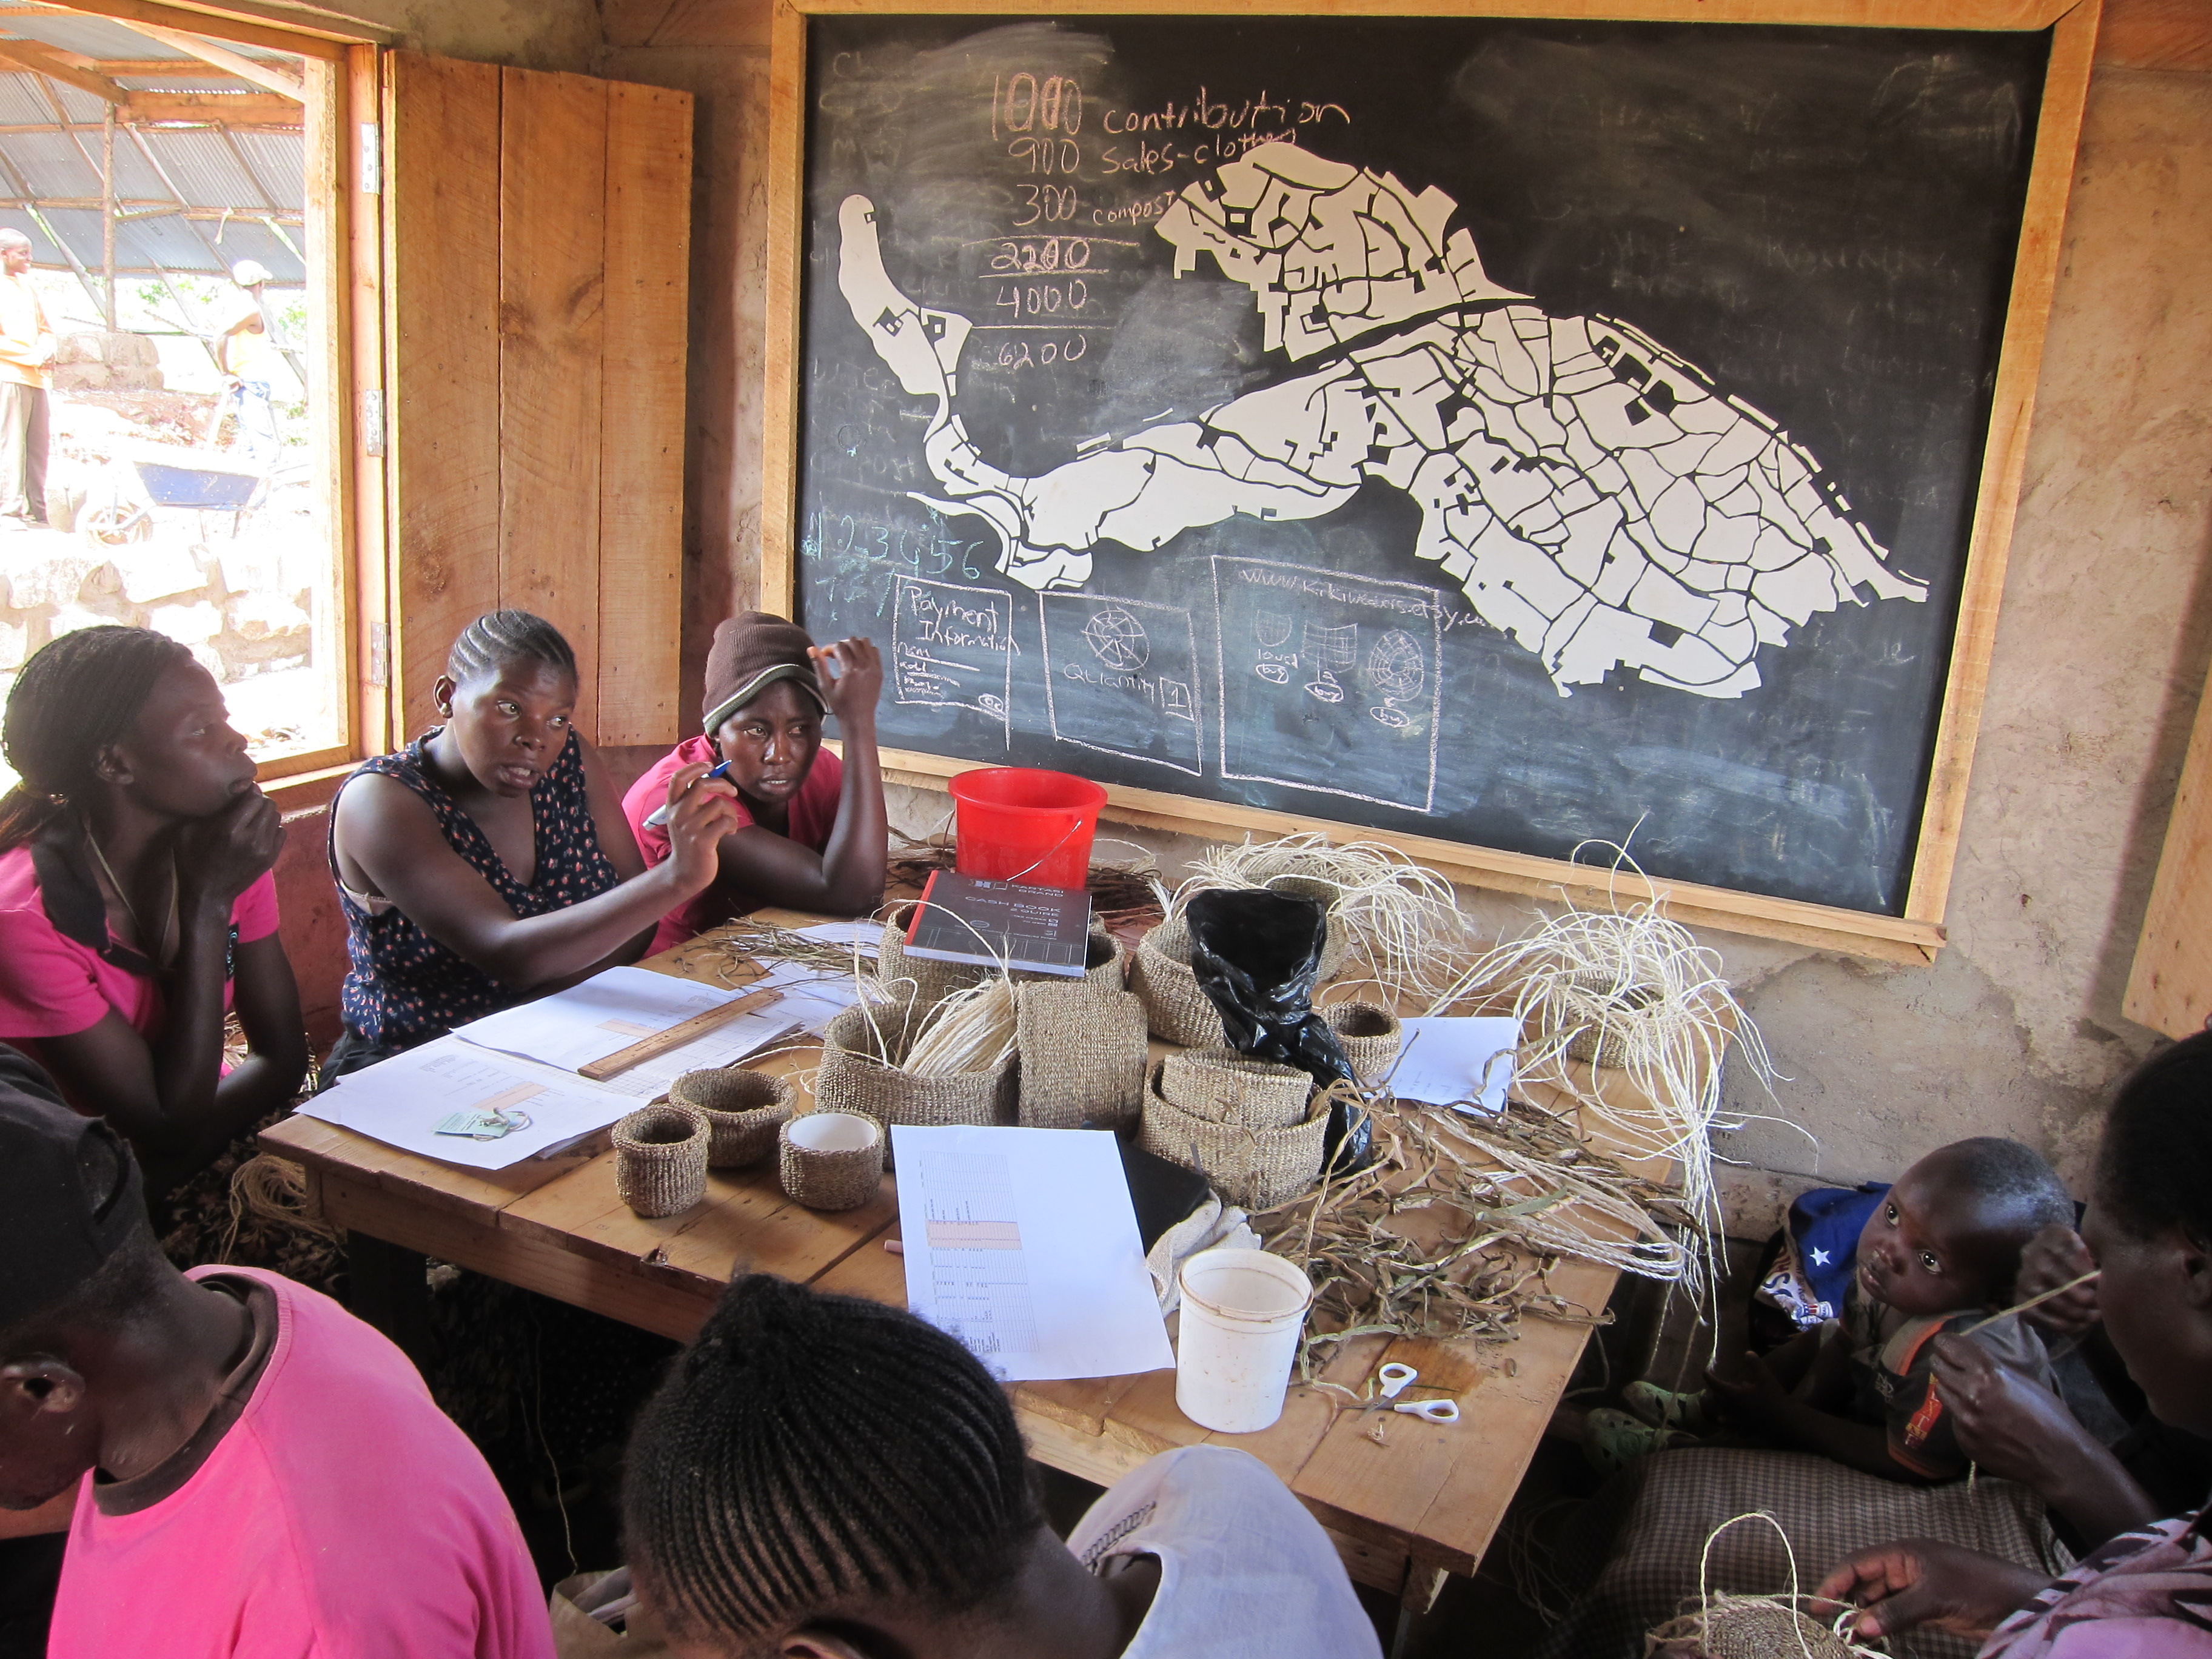 Women from NNDC group's weaving cooperative discuss management issues in the site office. Credit: KDI.